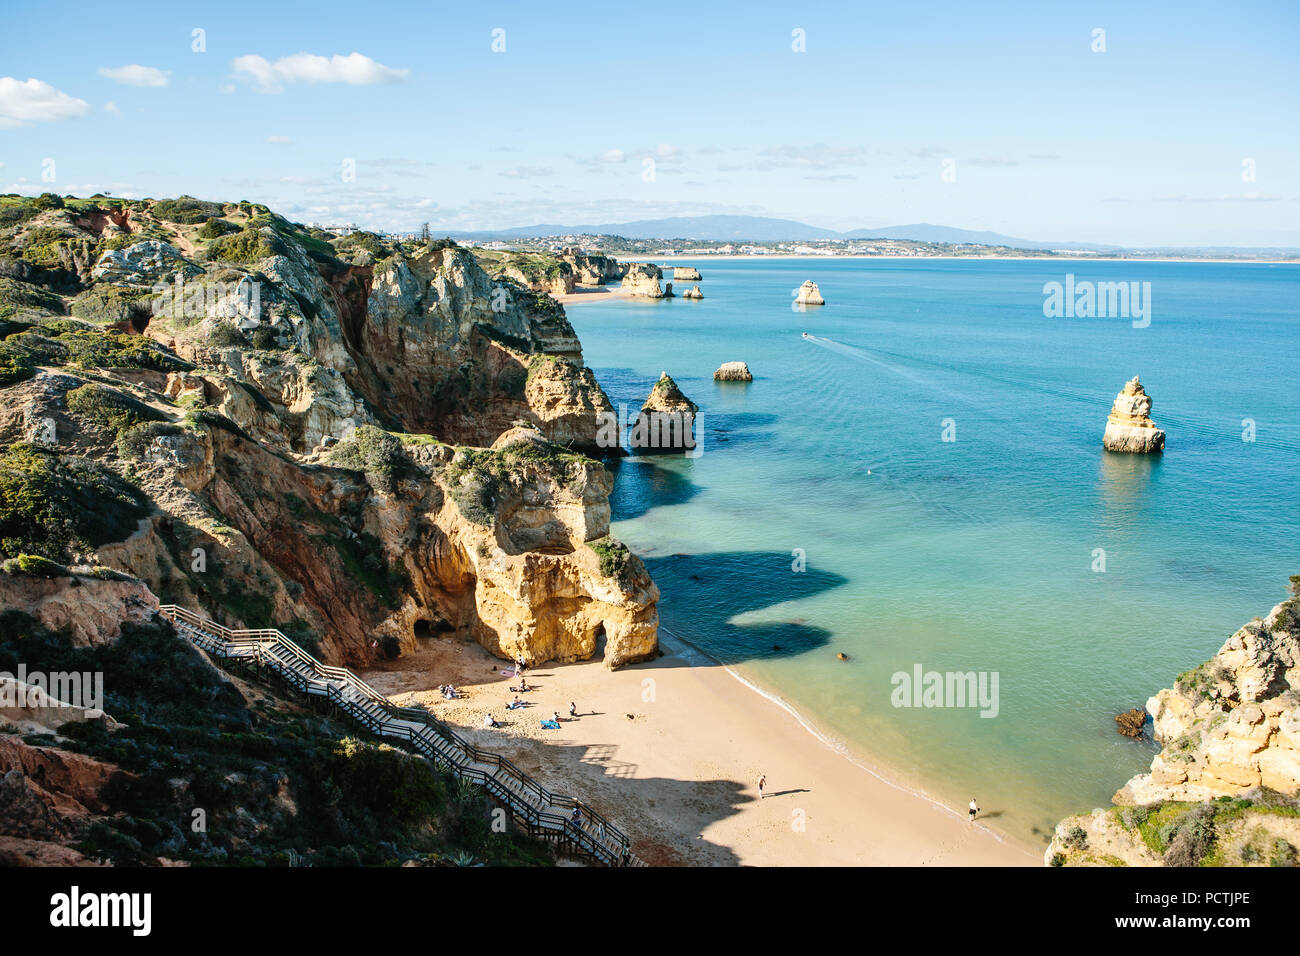 Beautiful views of the Atlantic Ocean off the coast of Portugal near the city of Lagos. People on the beach sunbathe, swim and relax during vacations or weekends or holidays - Stock Image